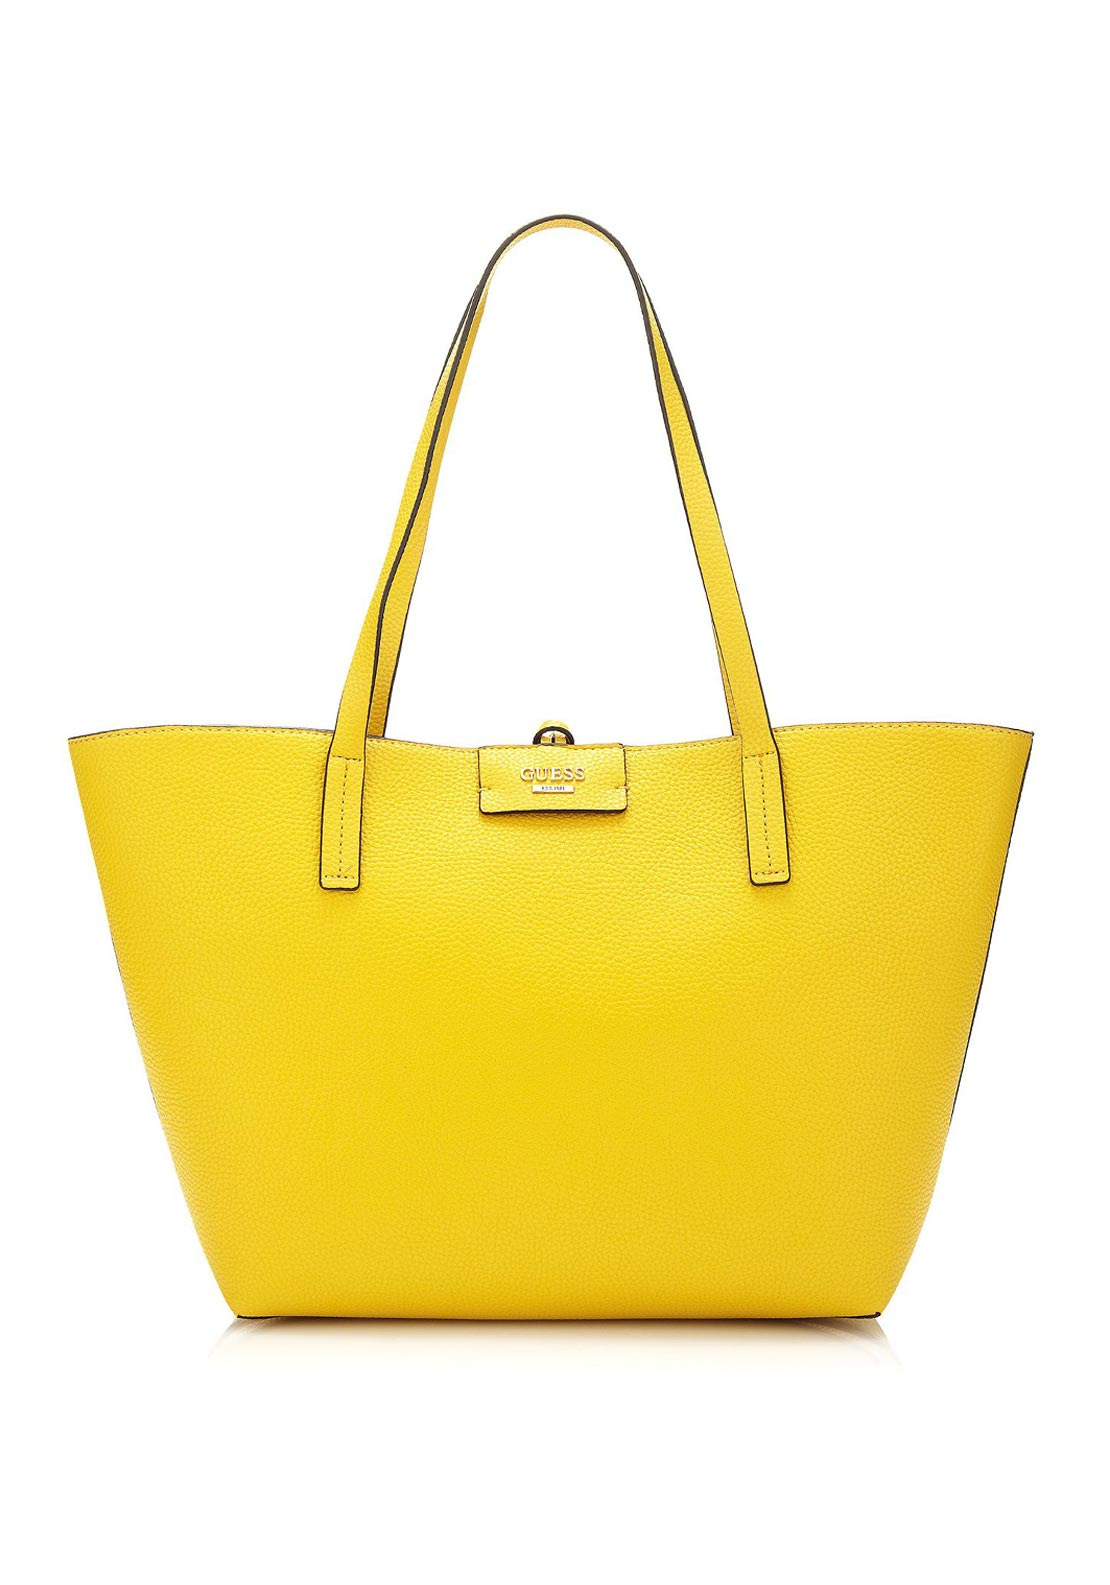 Guess Bobbi Reversible Tote Bag, Sun Yellow Multi